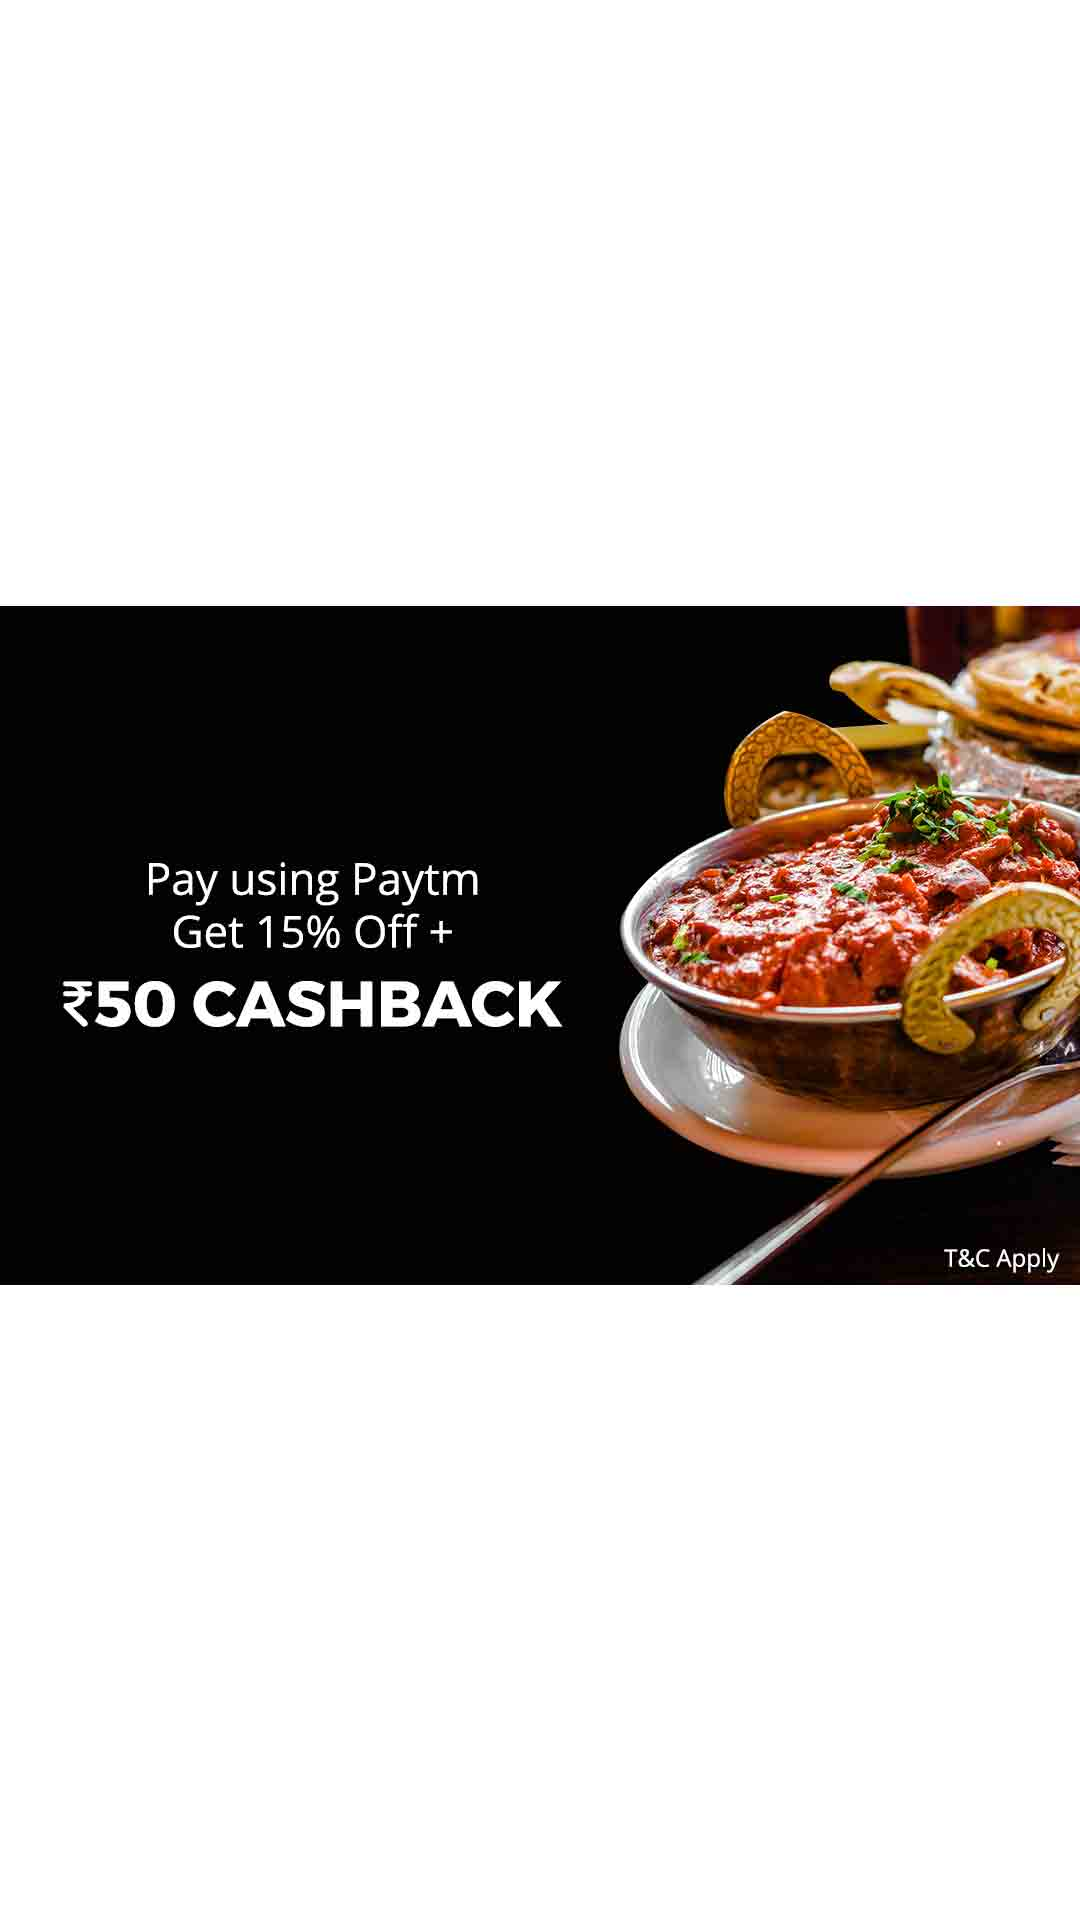 15% off + Flat Rs.50 cashback when you pay using Paytm at ZK's